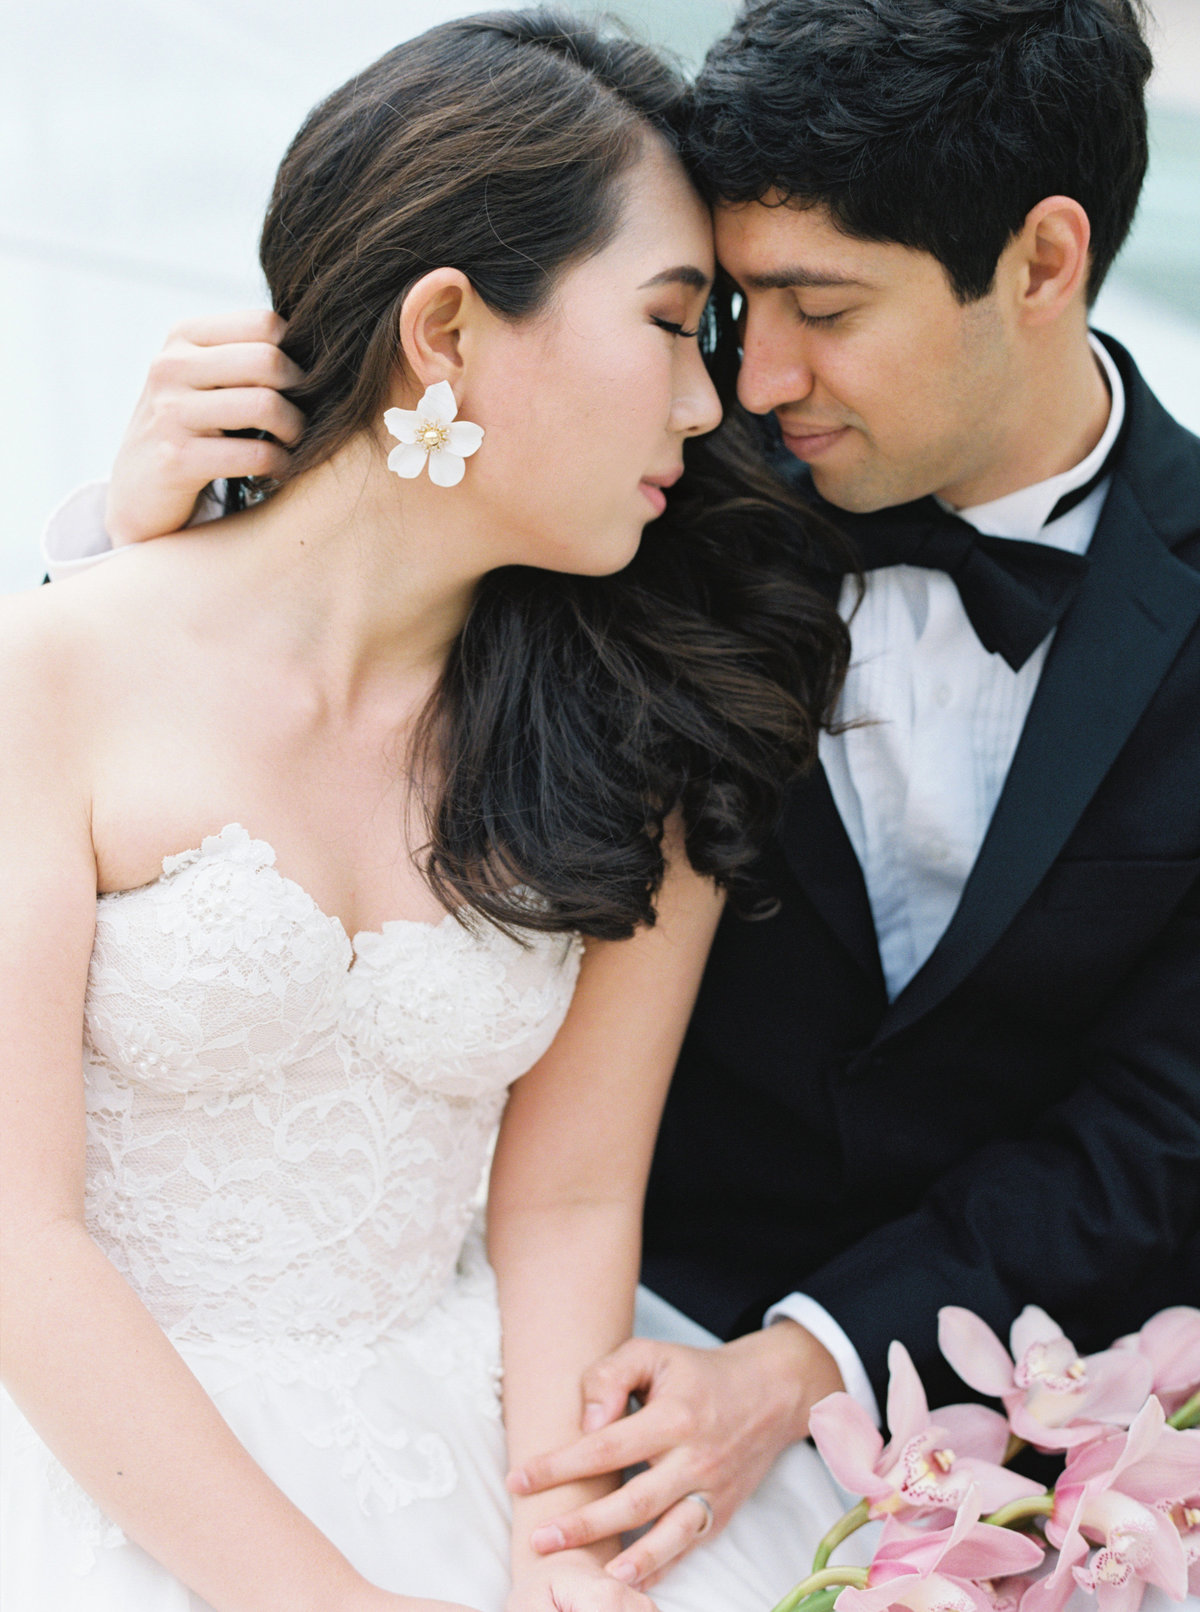 Diana + Pablo San Francisco California Legion of Honor Museum Wedding Session | Cassie Valente Photography 0092